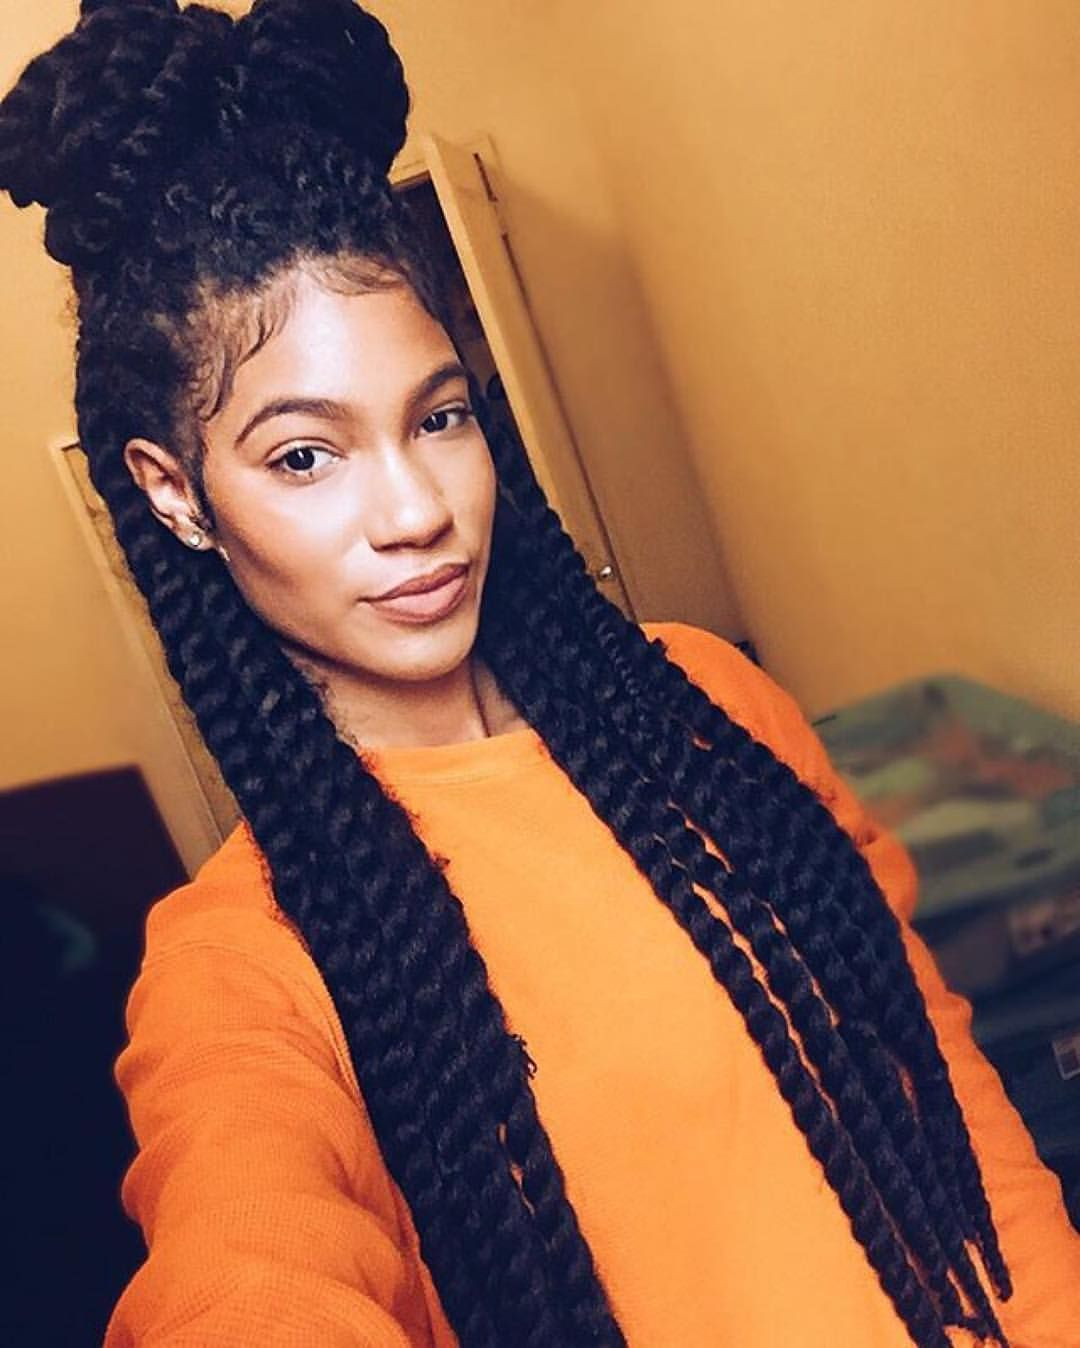 Marley Hairstyles: See This Instagram Photo By @protectivestyles • 4,381